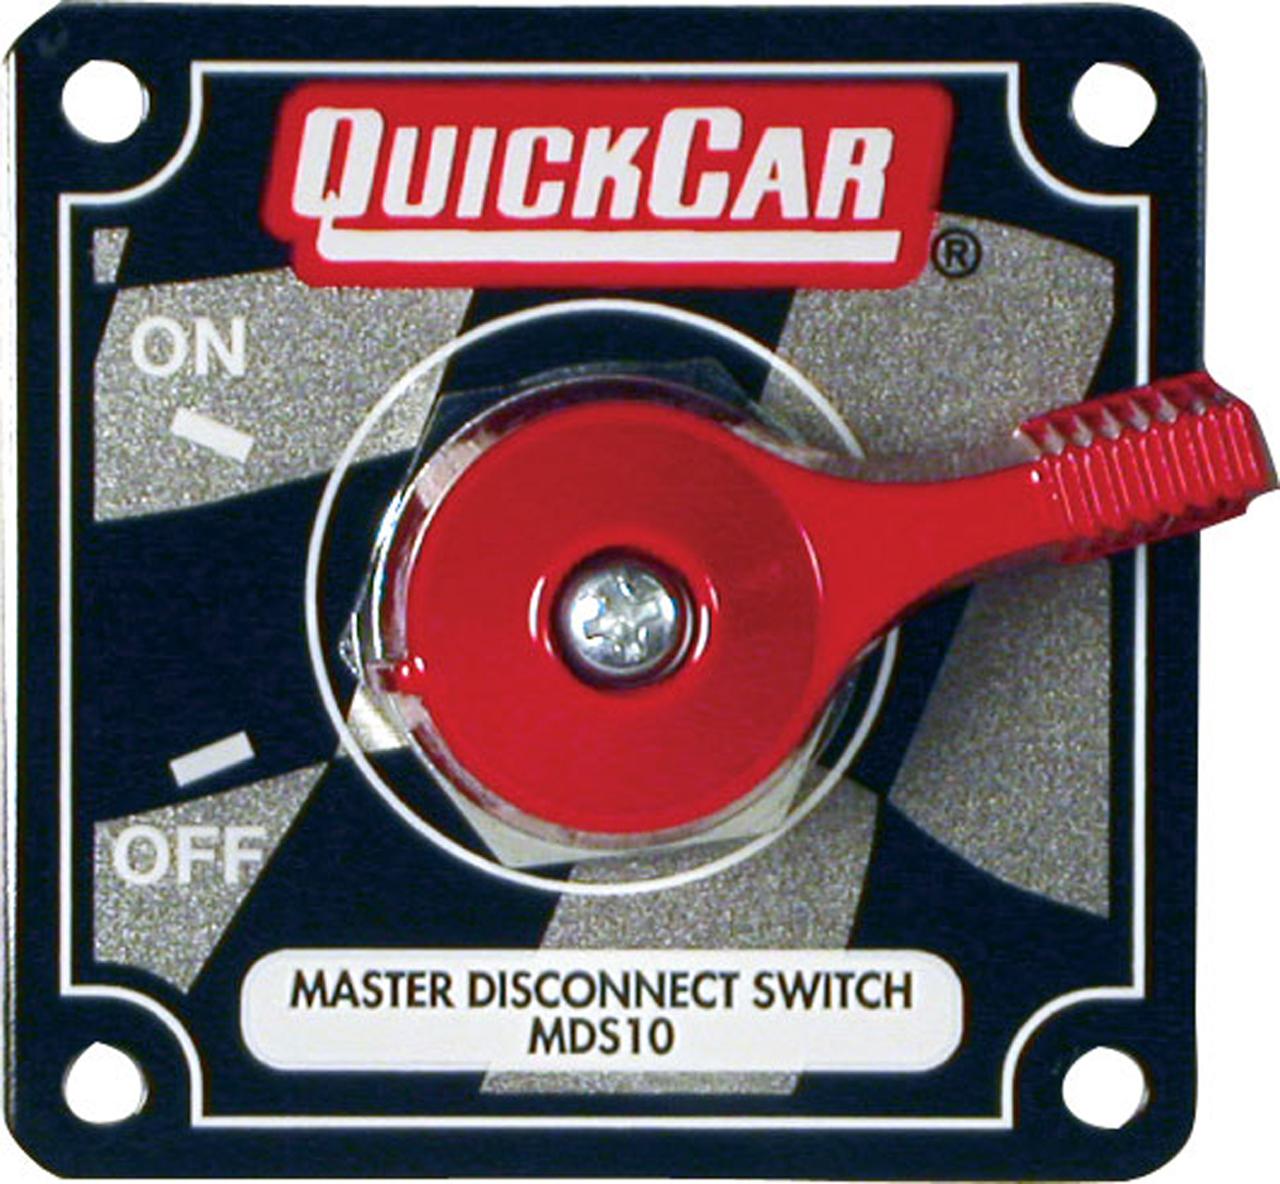 Quickcar Master Disconnect Switch with Alternator